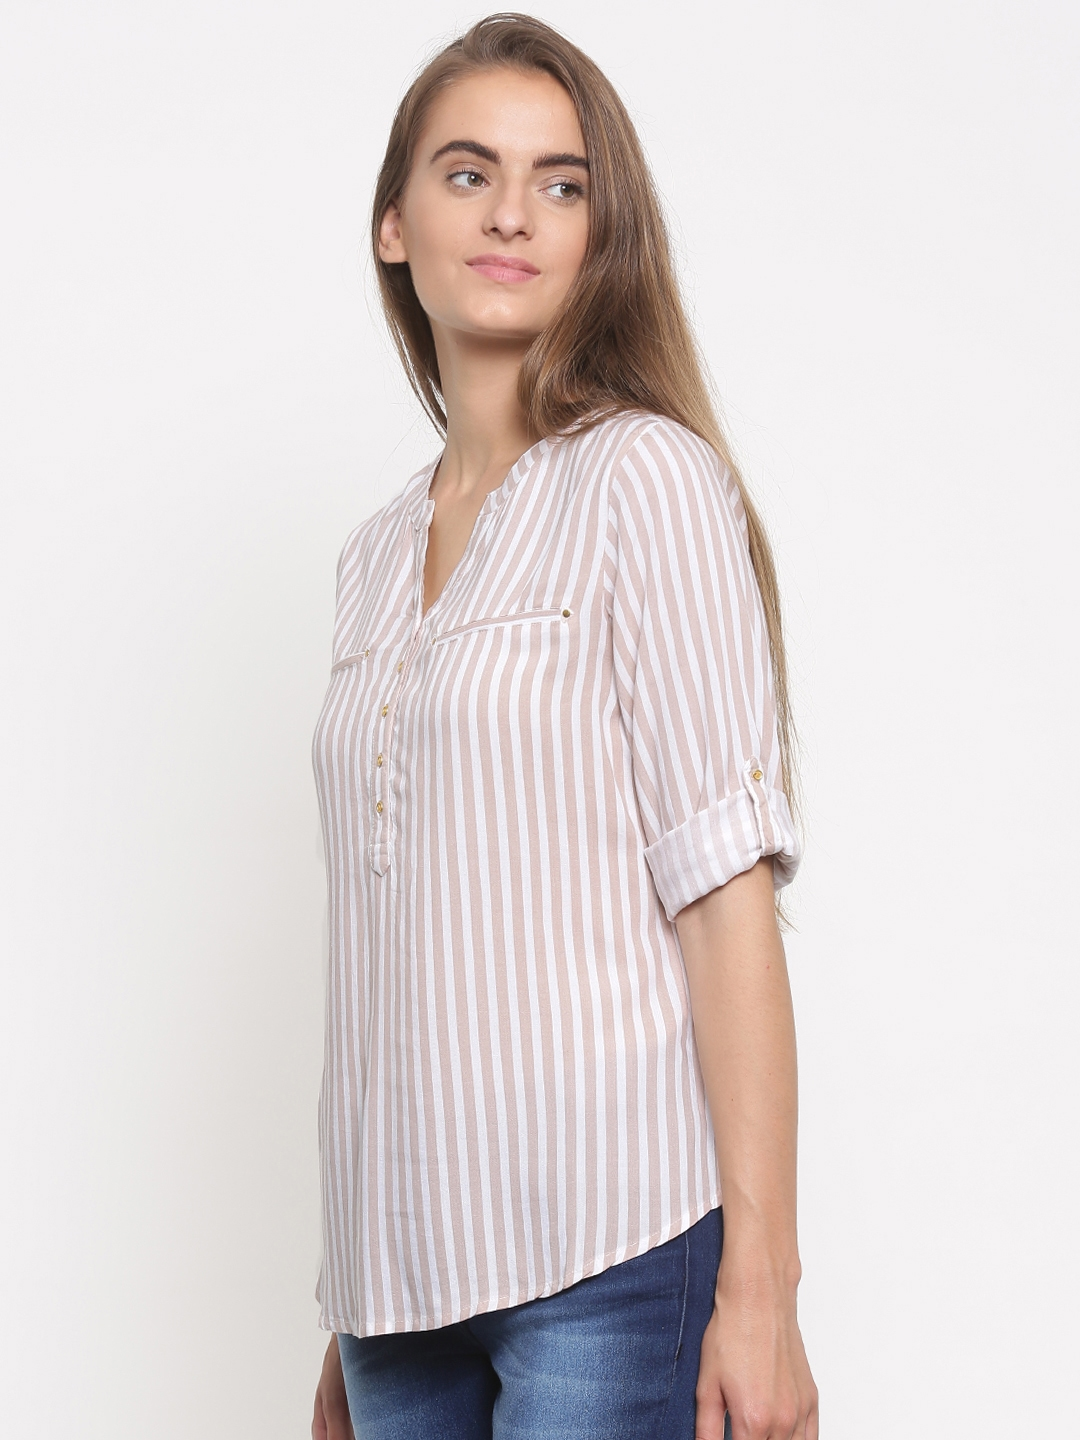 3499880ac2 Buy Fame Forever By Lifestyle Women Beige & White Striped Shirt ...